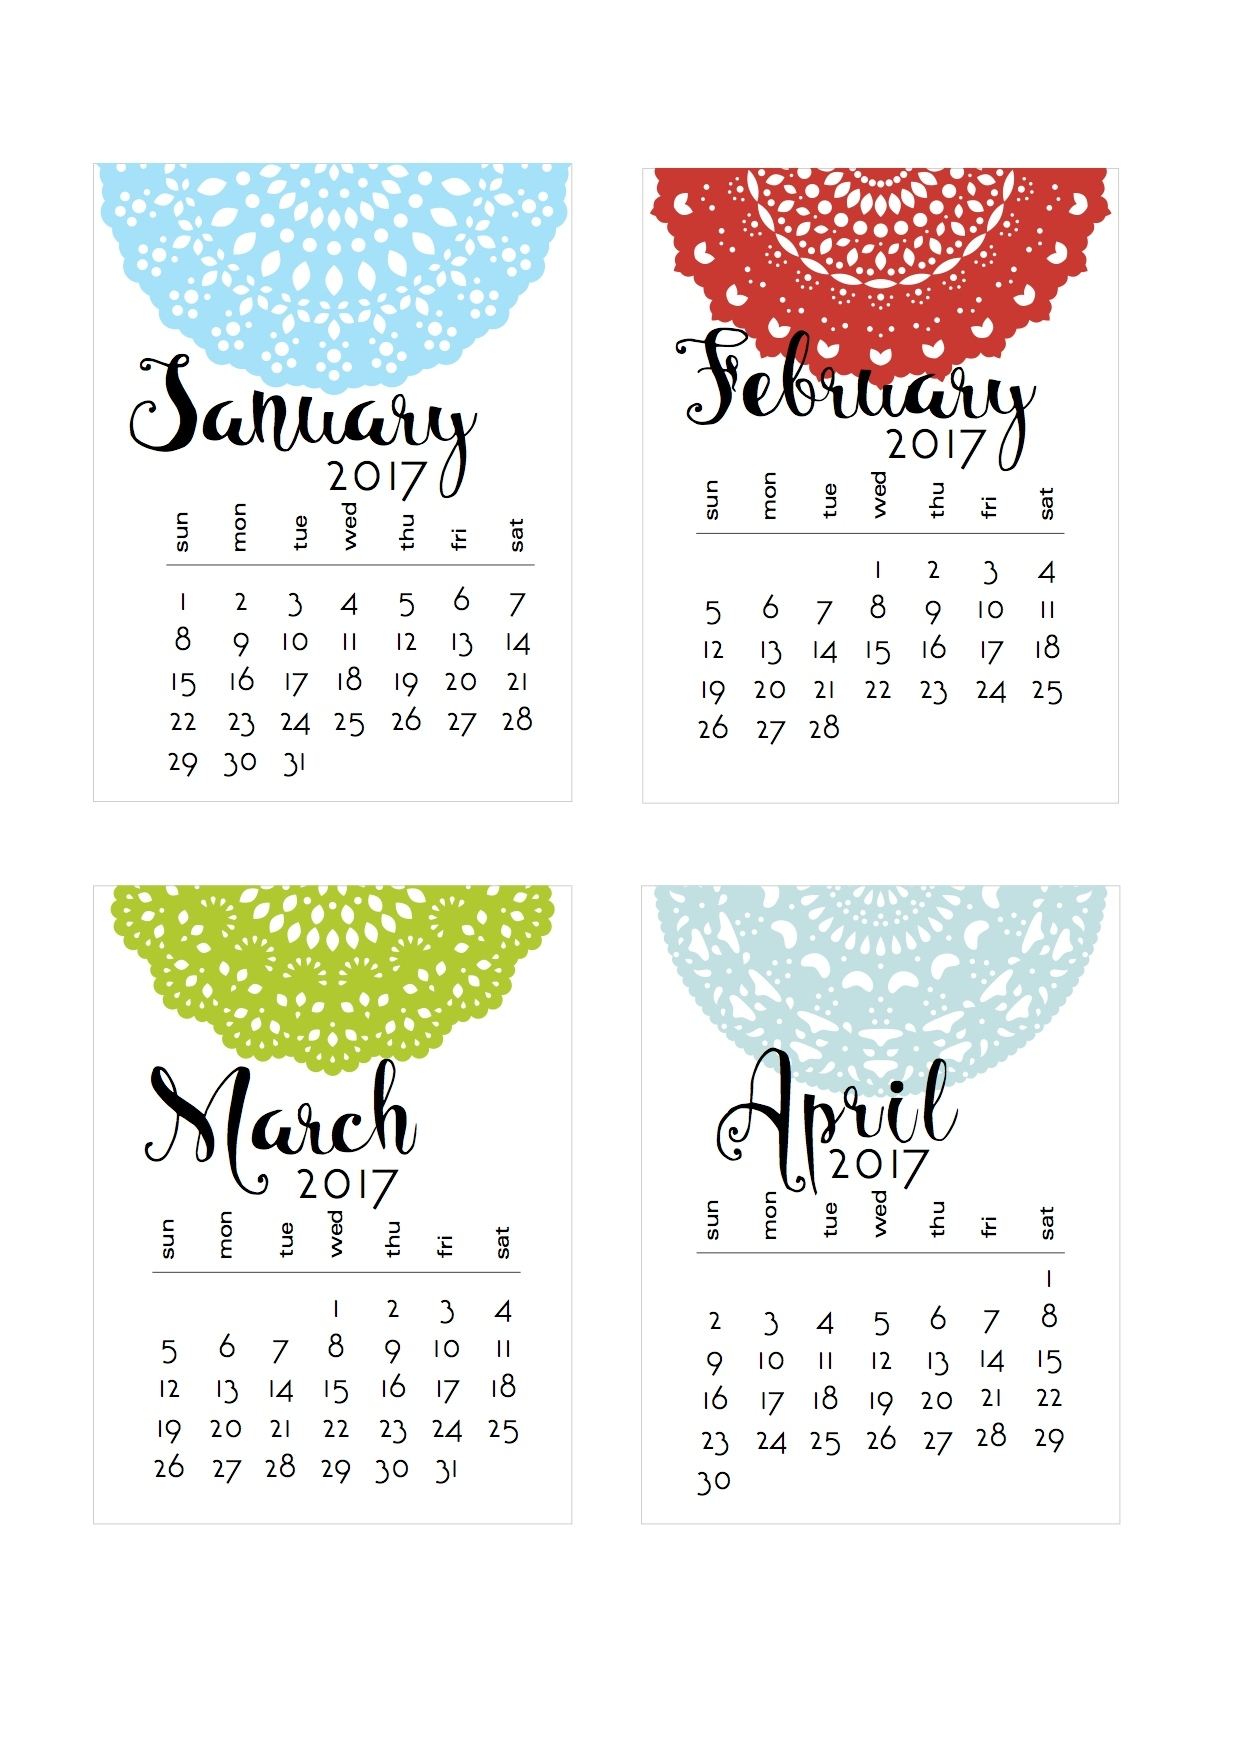 Re-Oriented Doily Calendar | Scrappystickyinkymess Extraordinary 3 Year Calendar Reference Printable 2020-2022